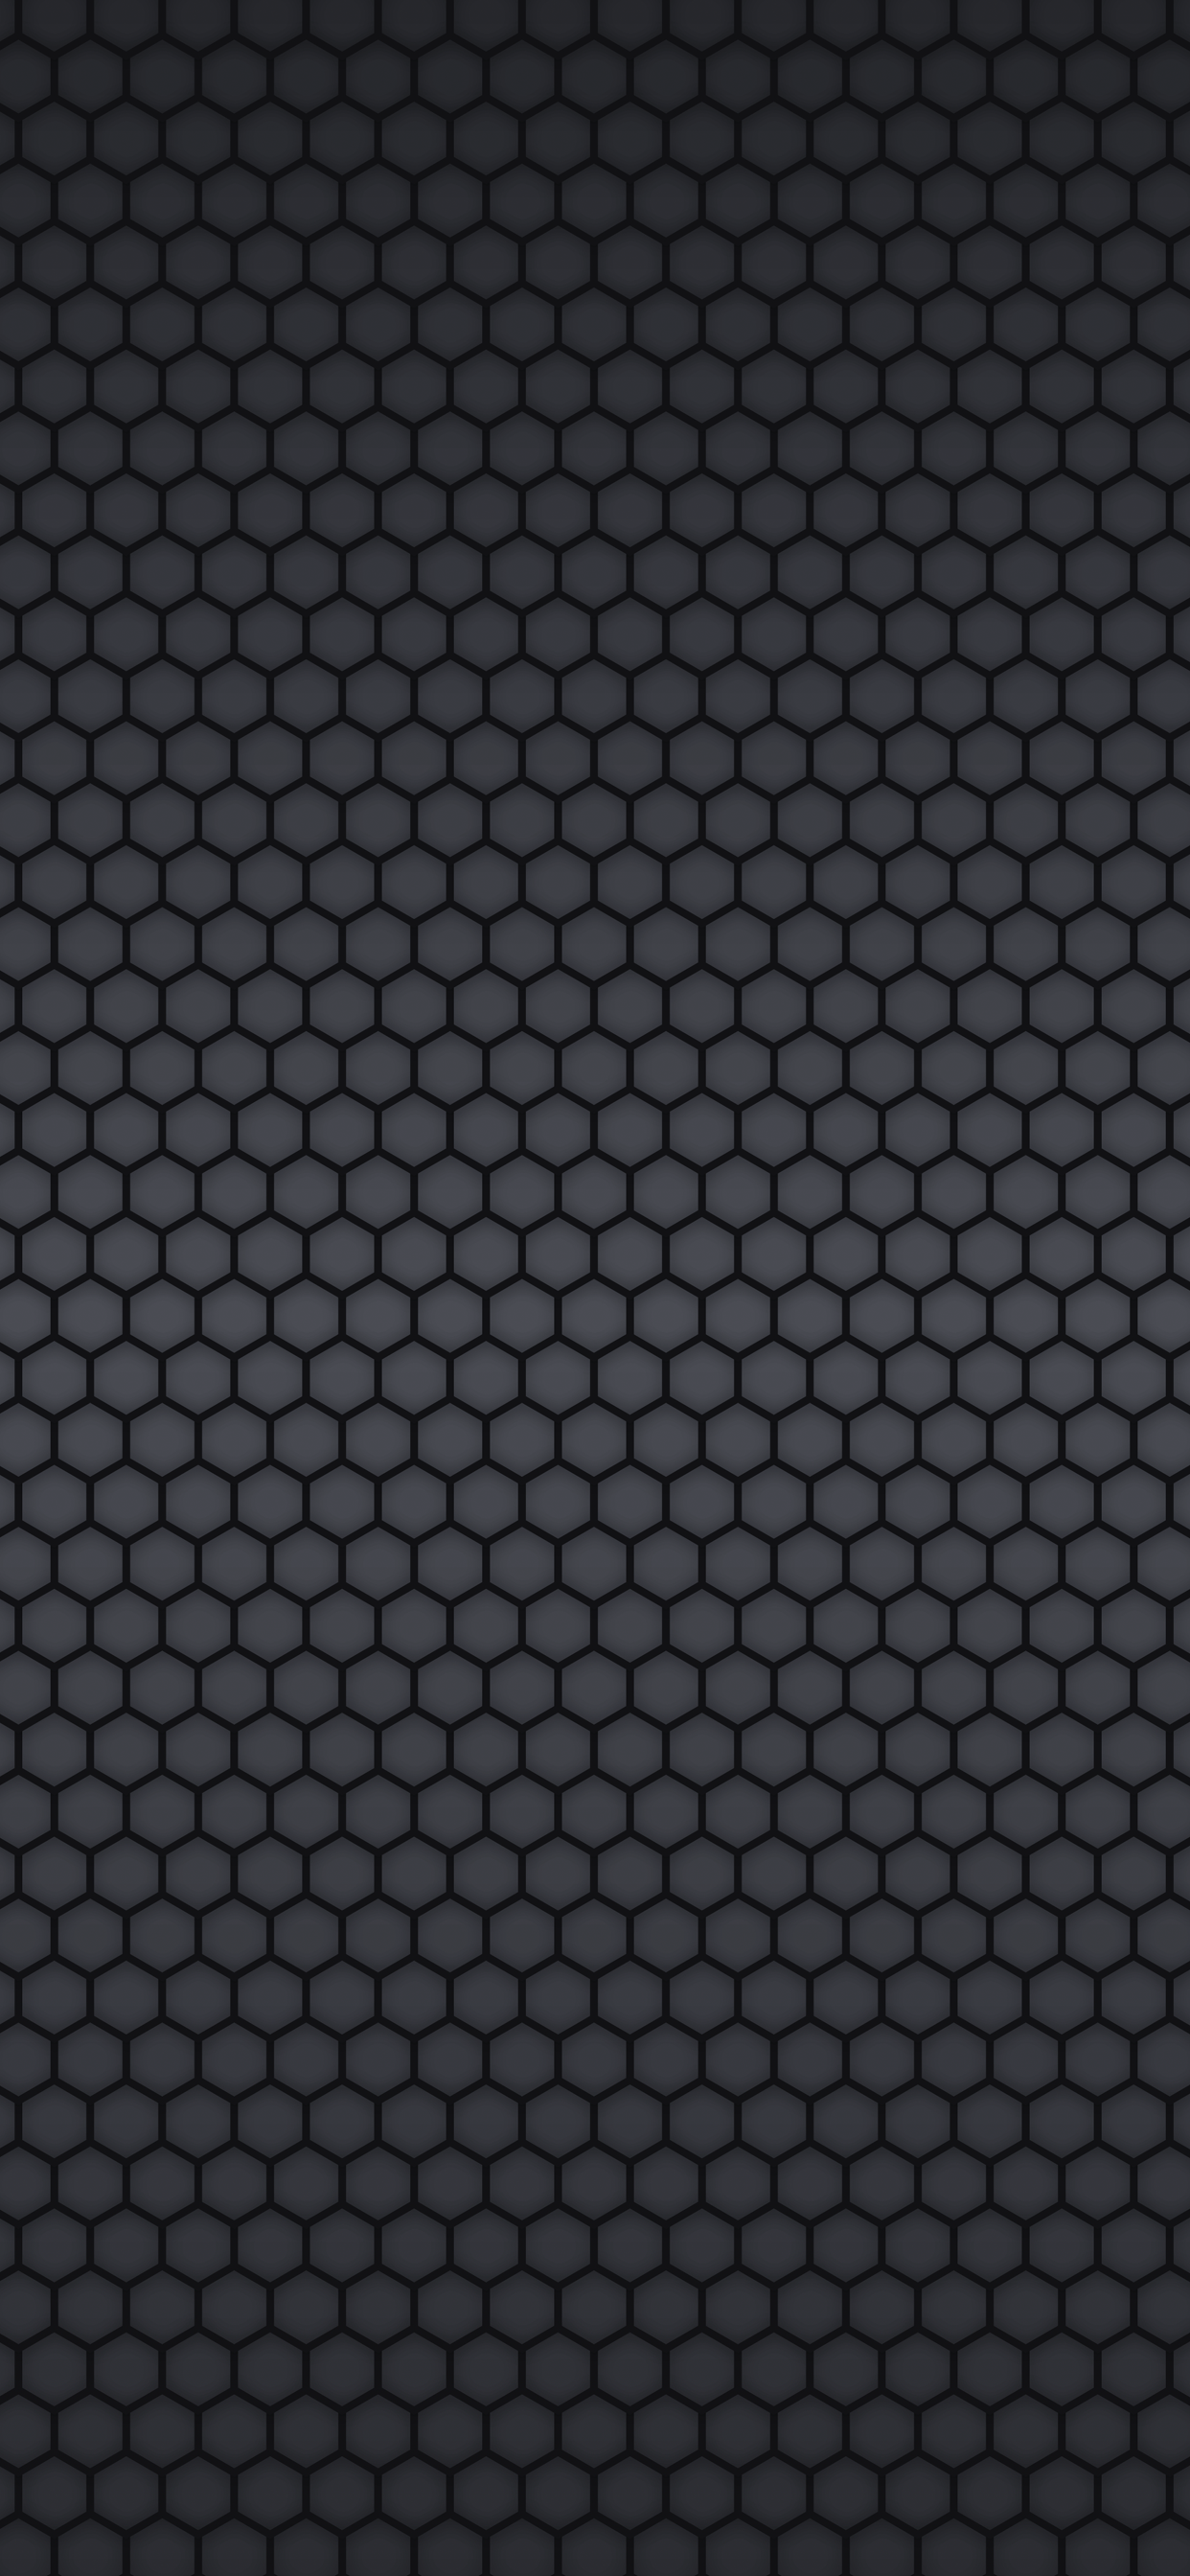 Swarm dark pattern iphone wallpaper arthur schrinemacher